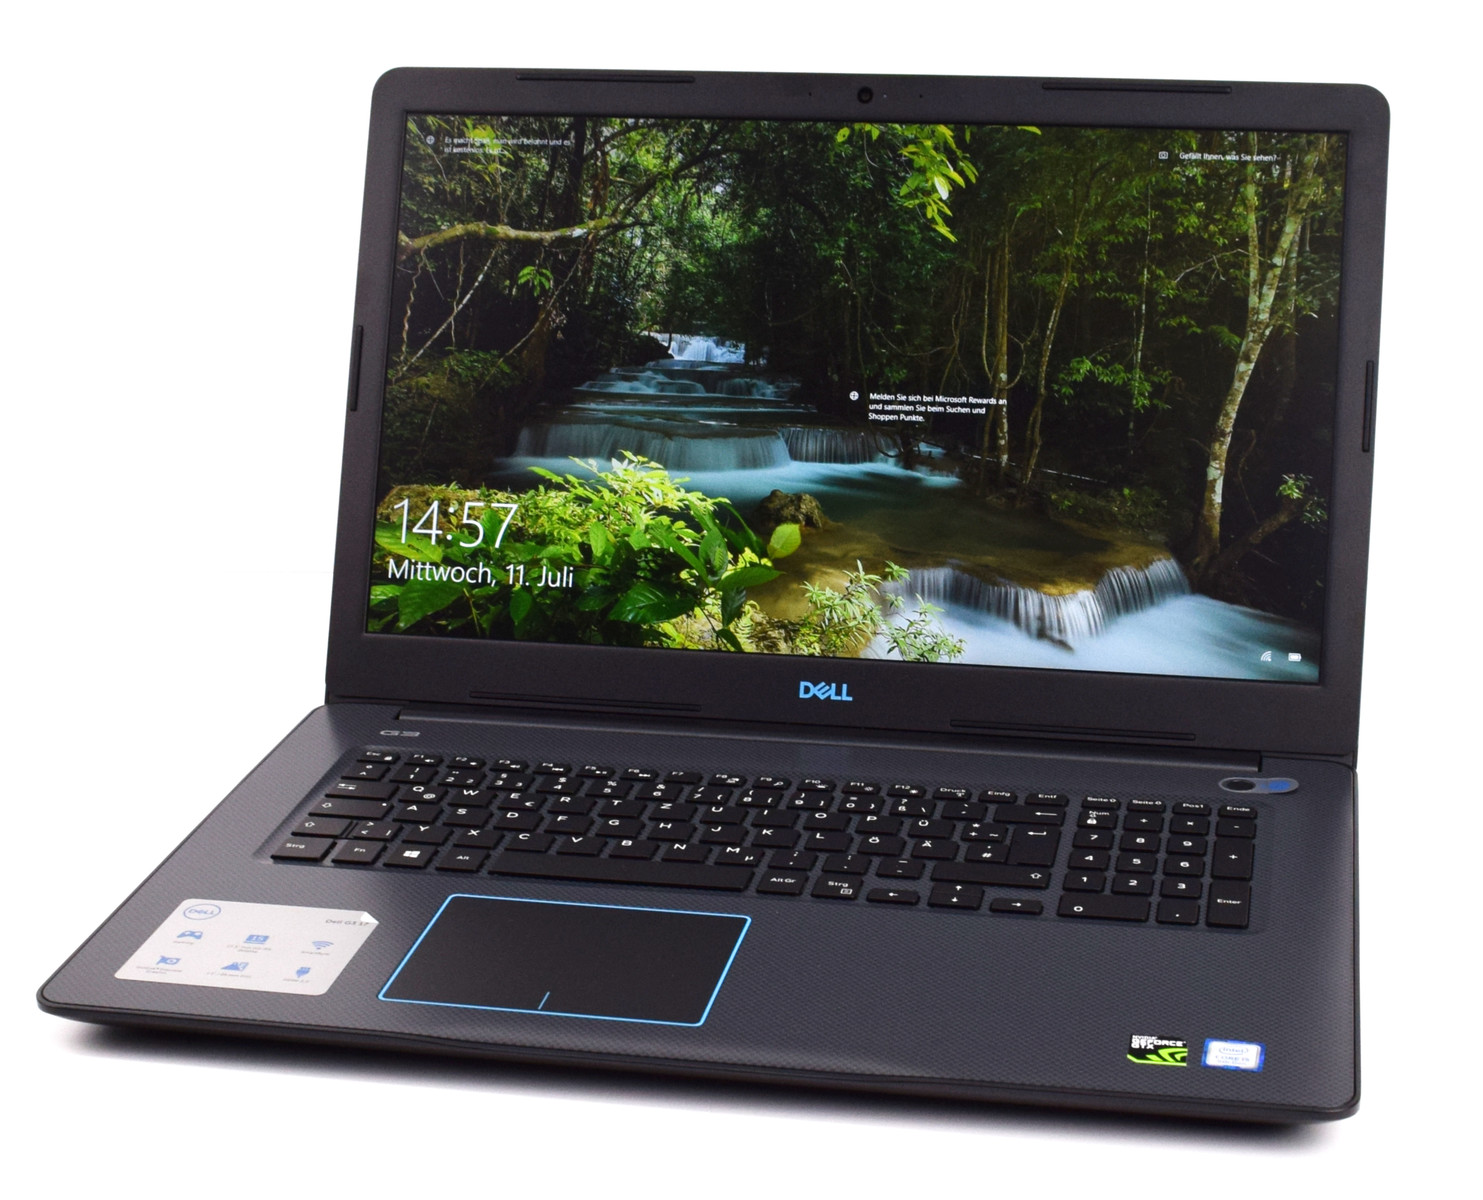 Best Gaming Laptops Under 800$